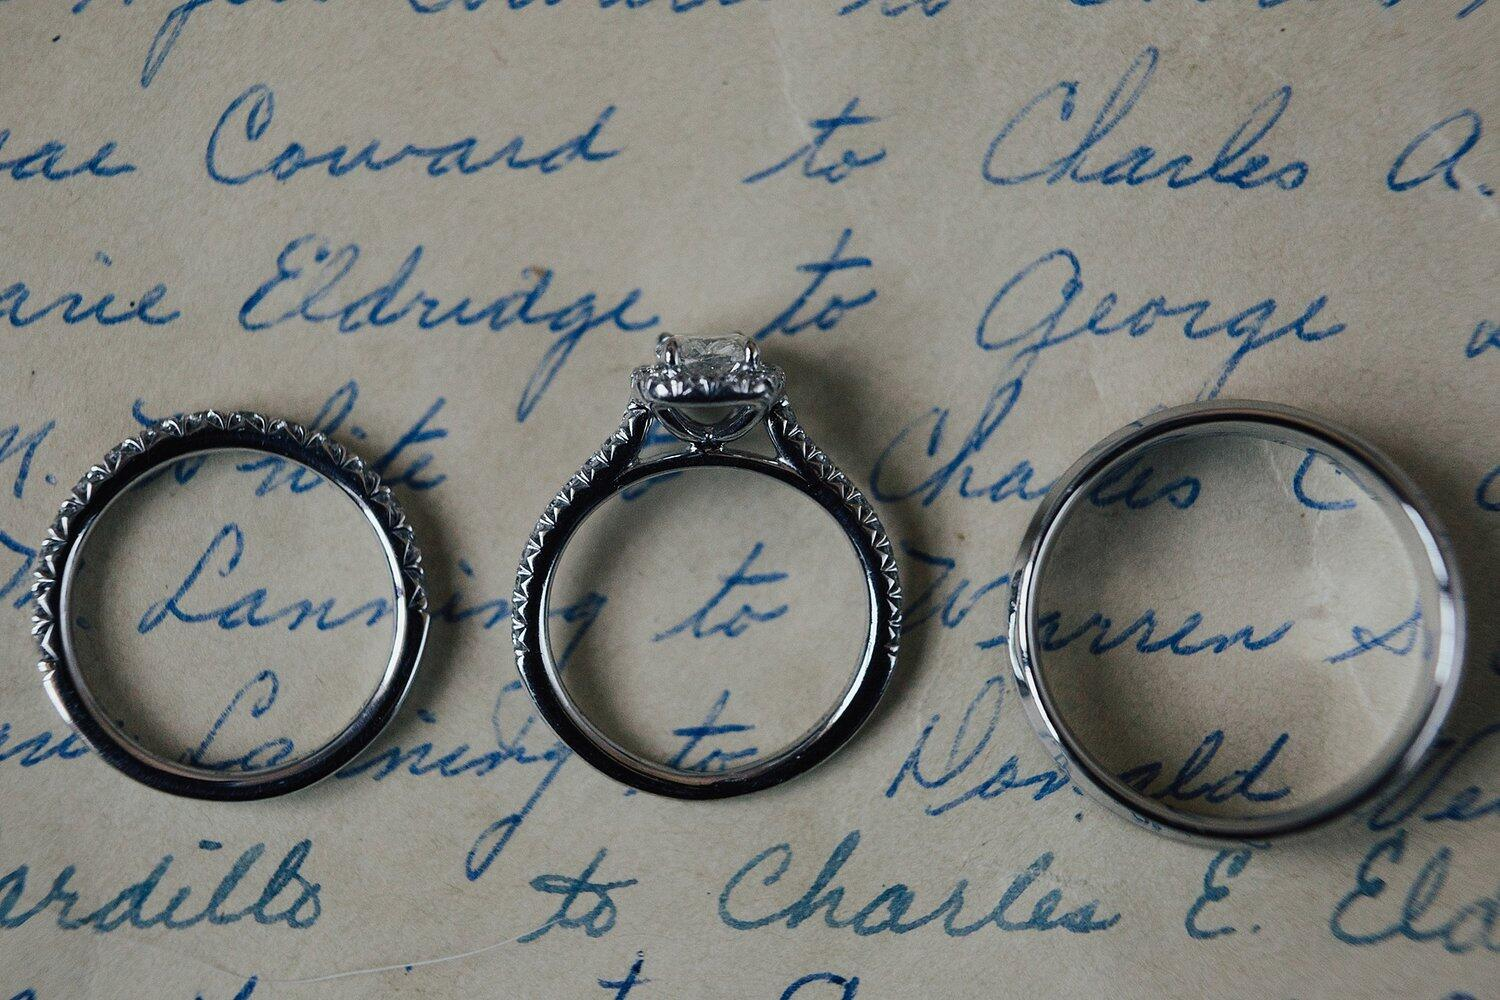 A set of 3 wedding rings placed on top of a handwritten letter